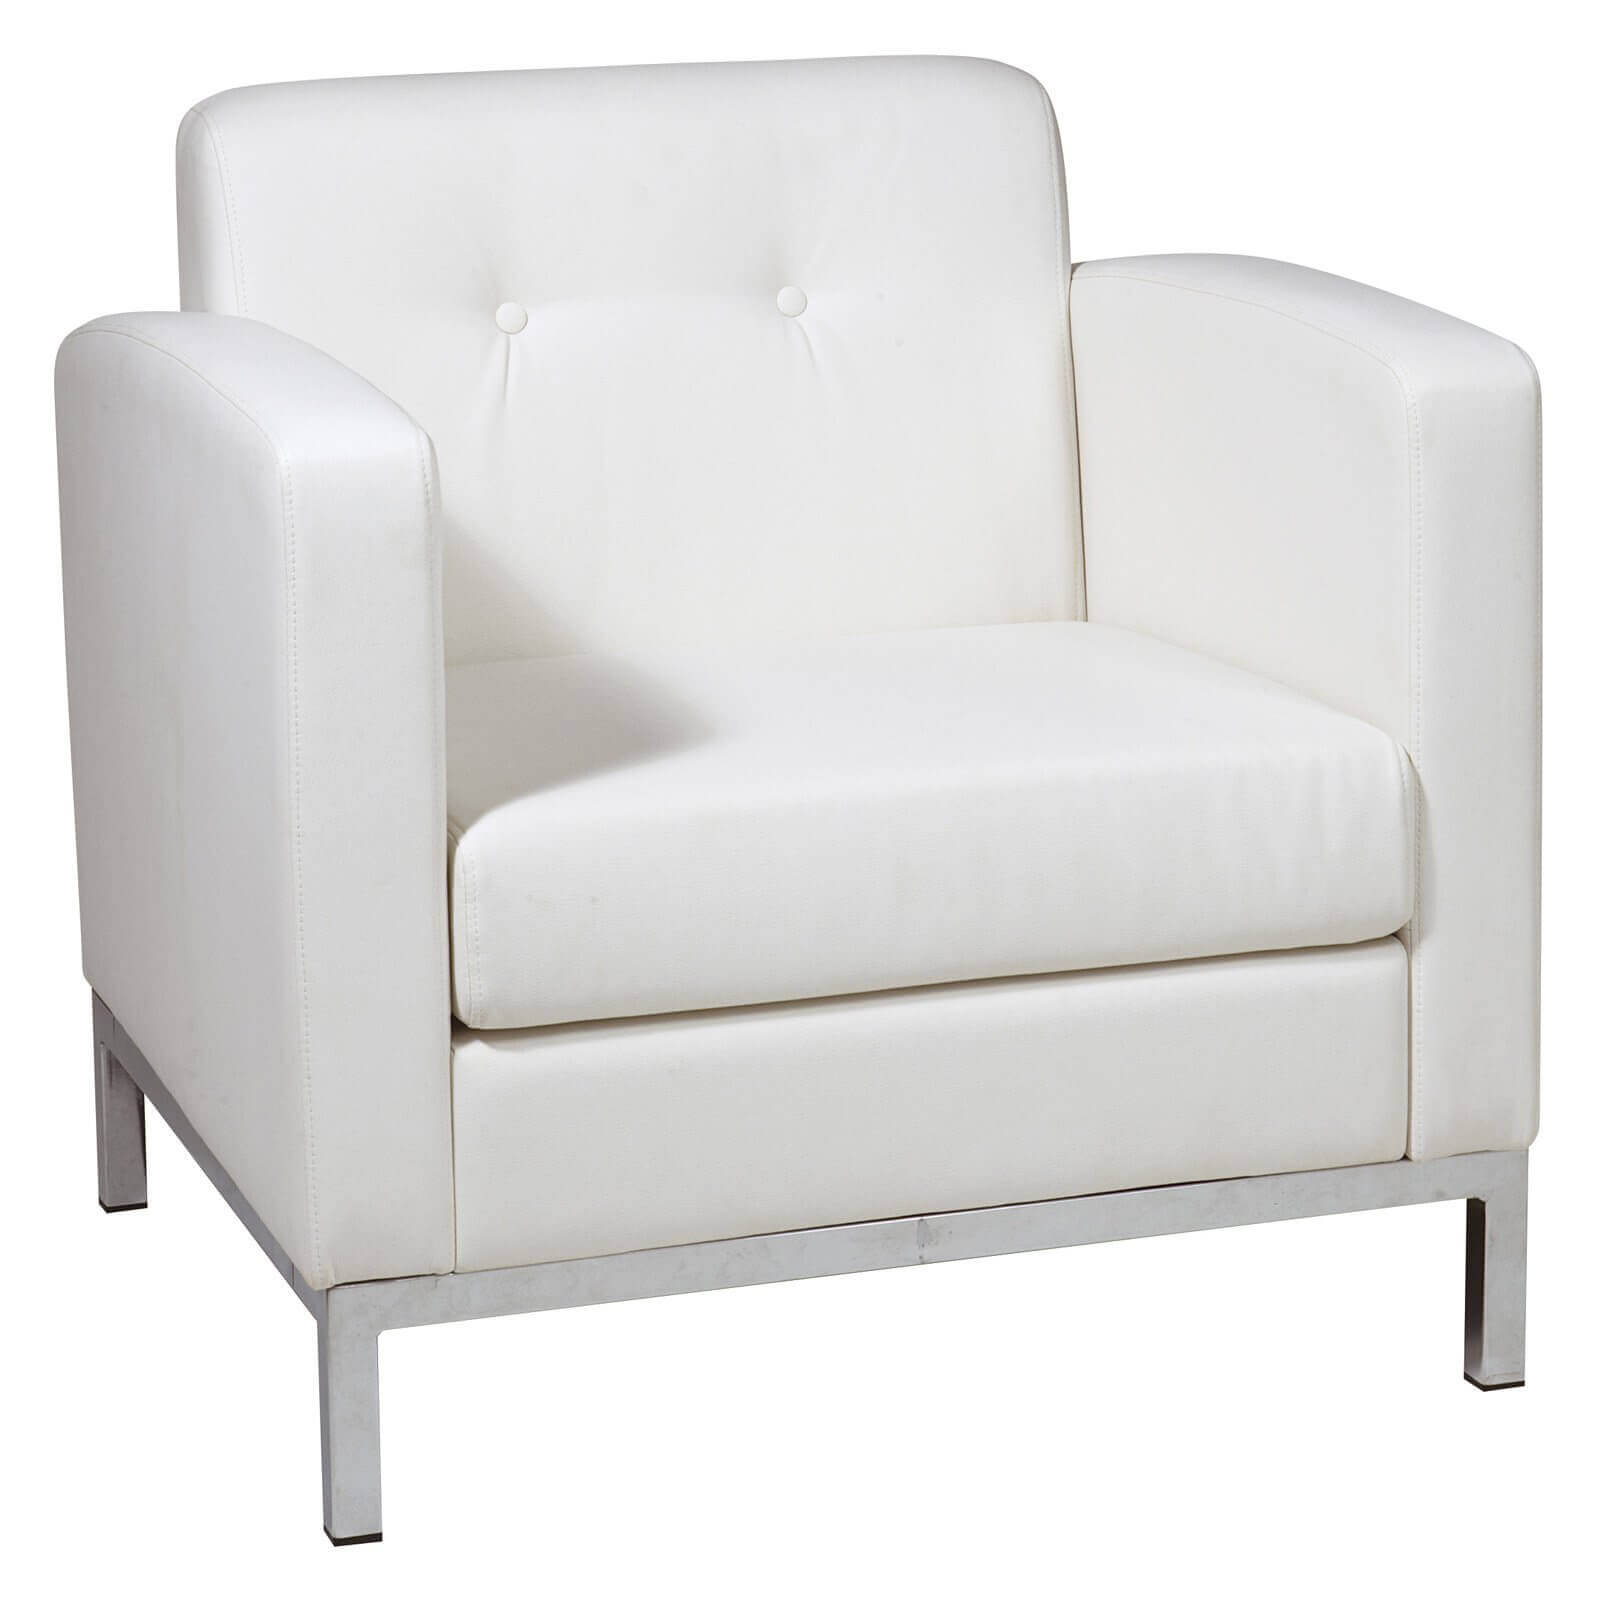 37 white modern accent chairs for the living room for White modern office furniture